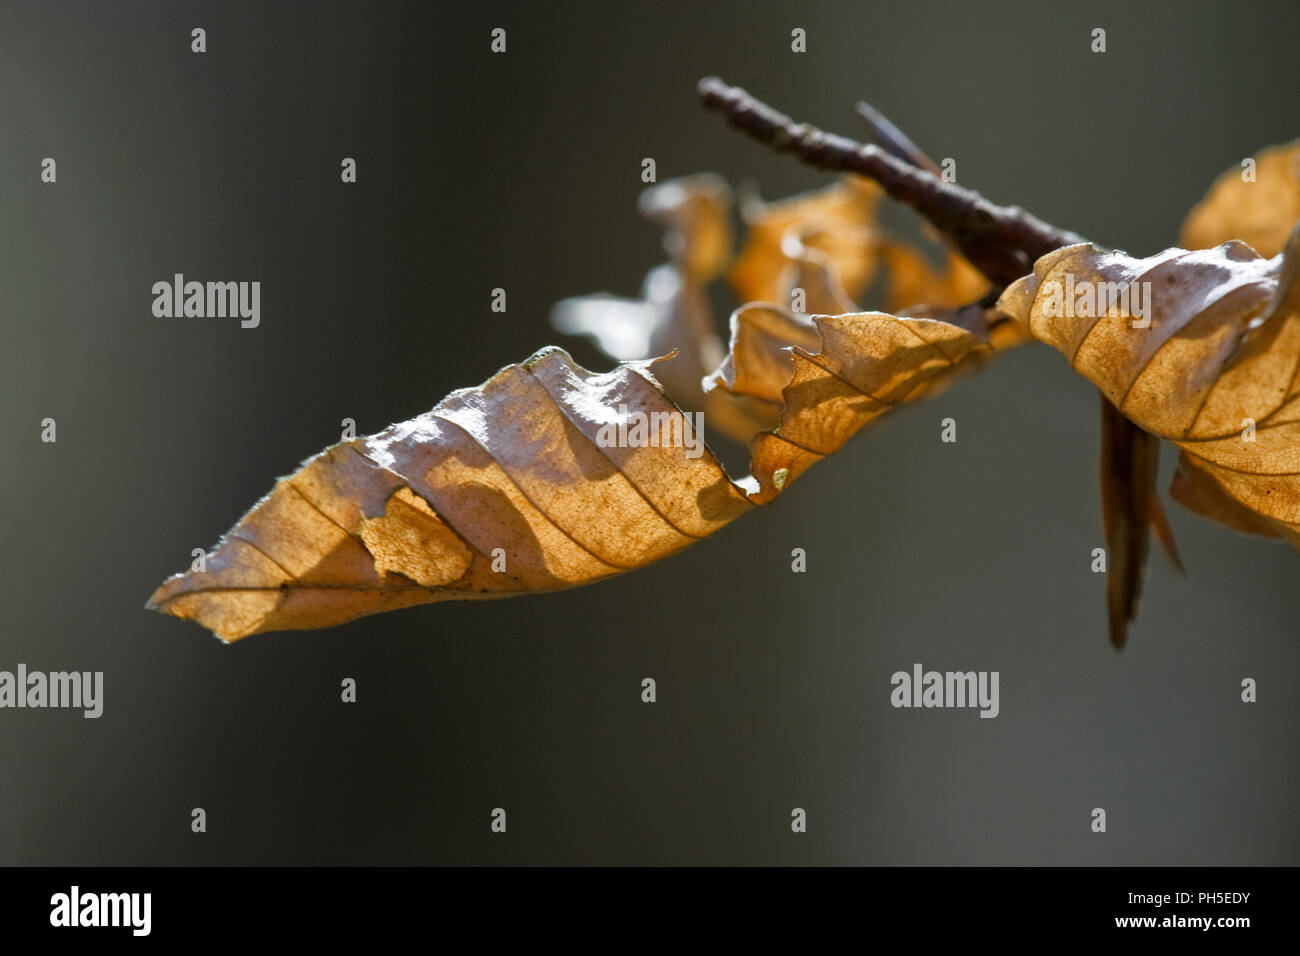 Old Beech Fagus sylvatica leaves. - Stock Image